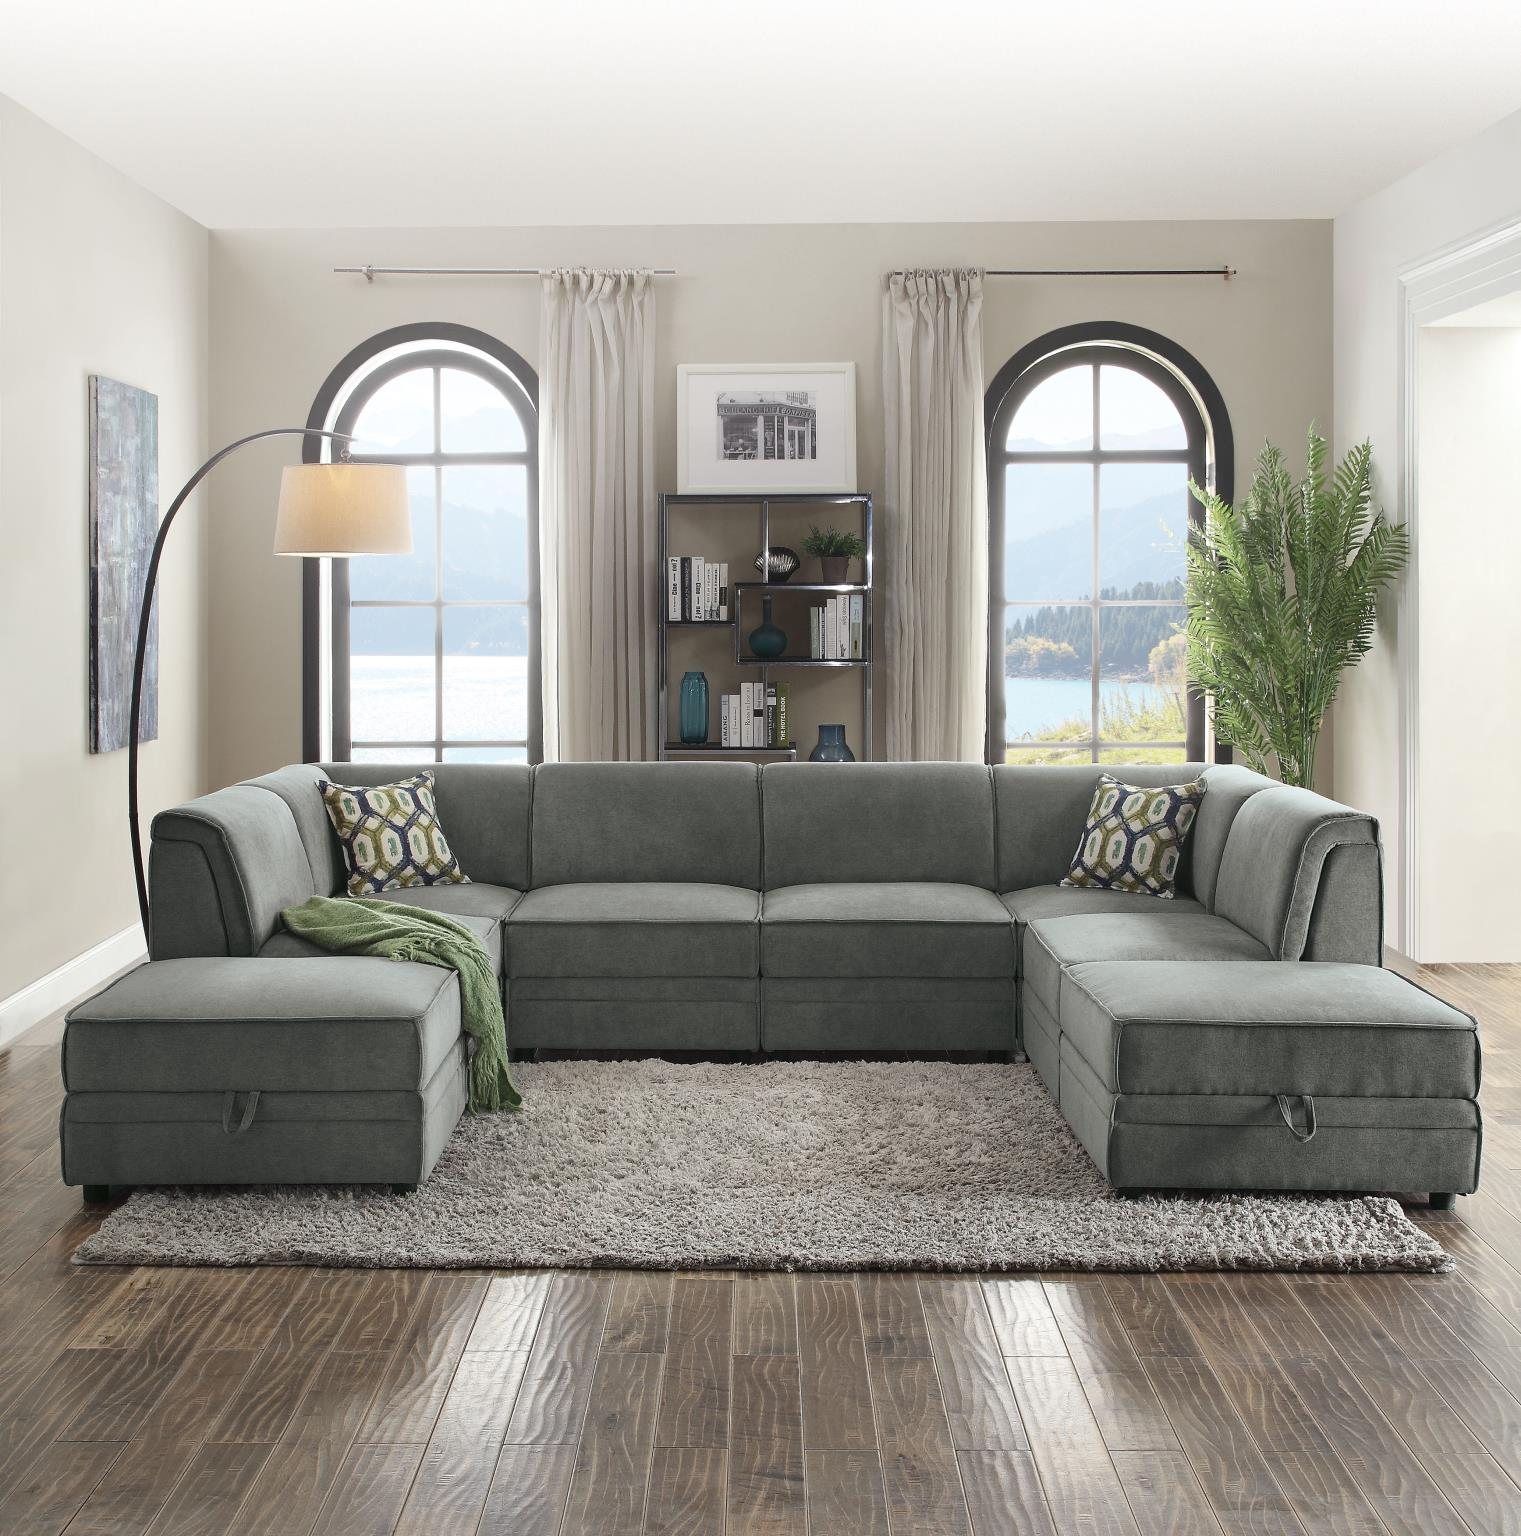 Another Configuration of Sectional Sofa w/ 4 Armless Chairs, 2 Corners, and 2 Ottomans